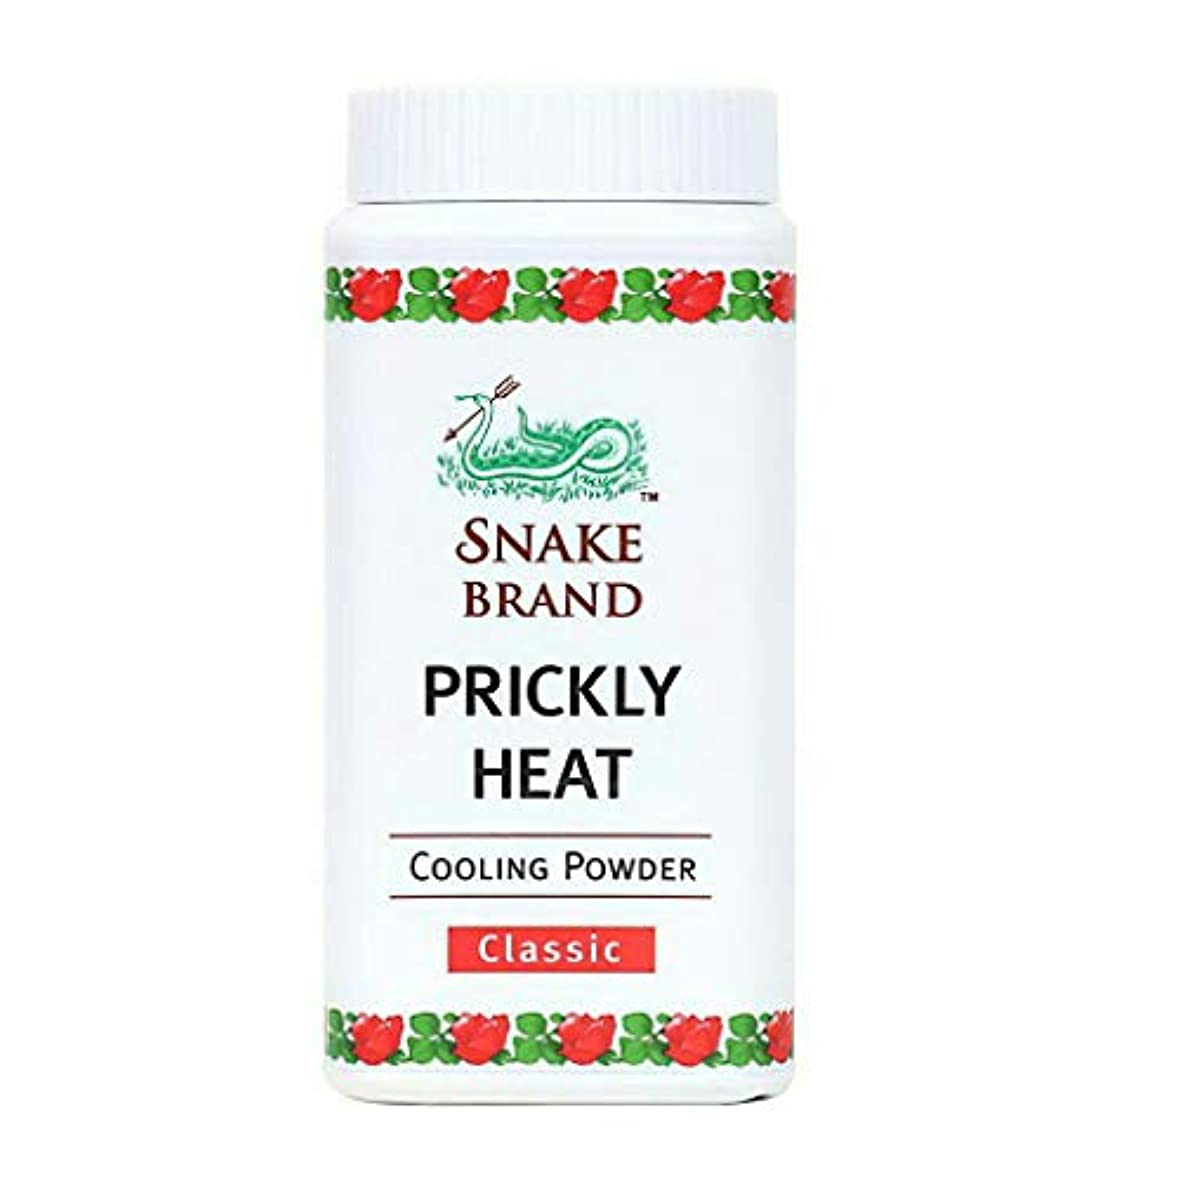 レパートリー登録振る舞うPrickly Heat Cooling Fresh Refreshing Body Powder Skin Moisture Snake Brand Cooling Powder Classic 50g